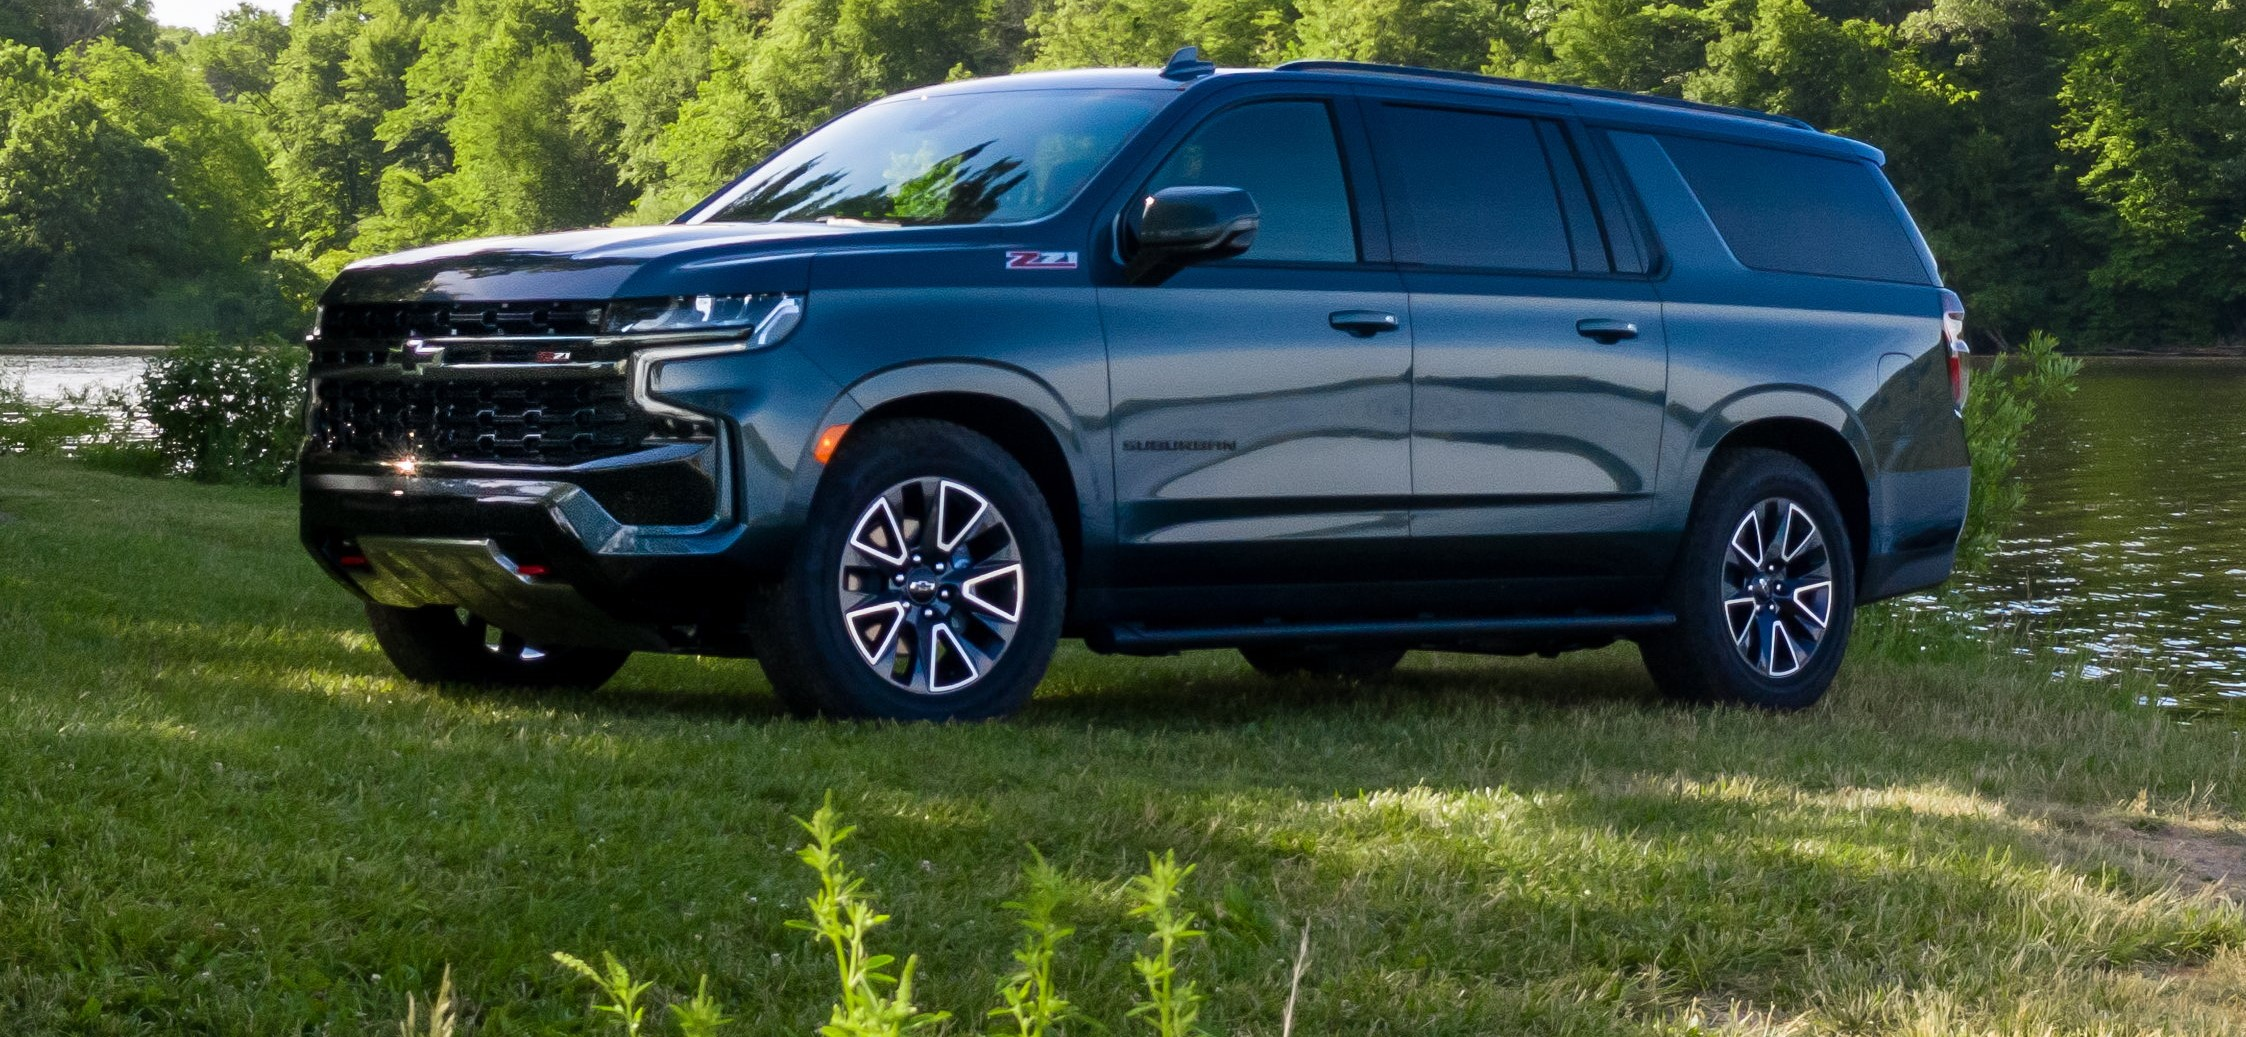 2021 Chevy Suburban Z71 Specs and Review